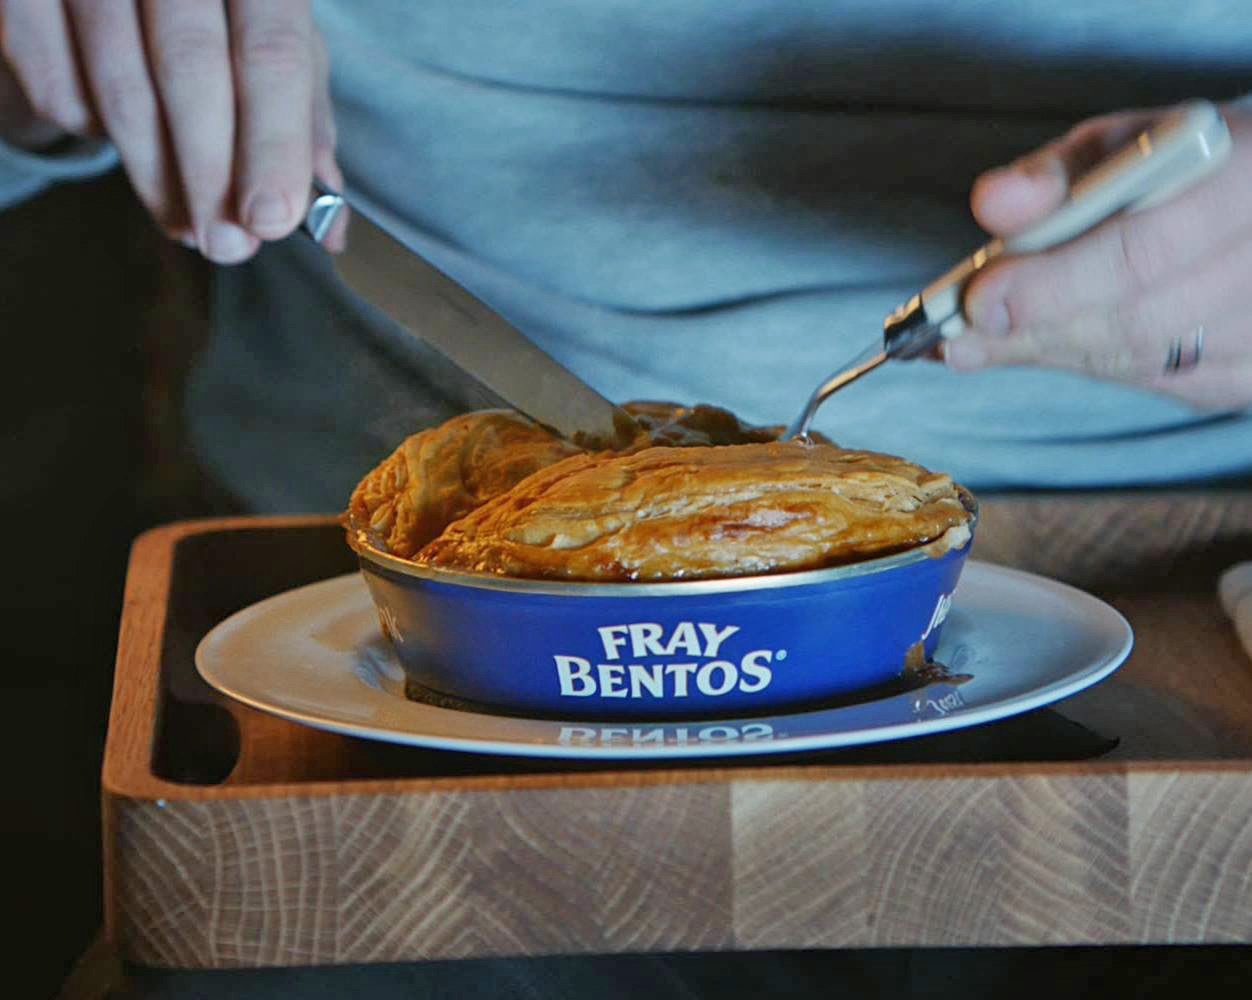 (Picture: Fray Bentos)